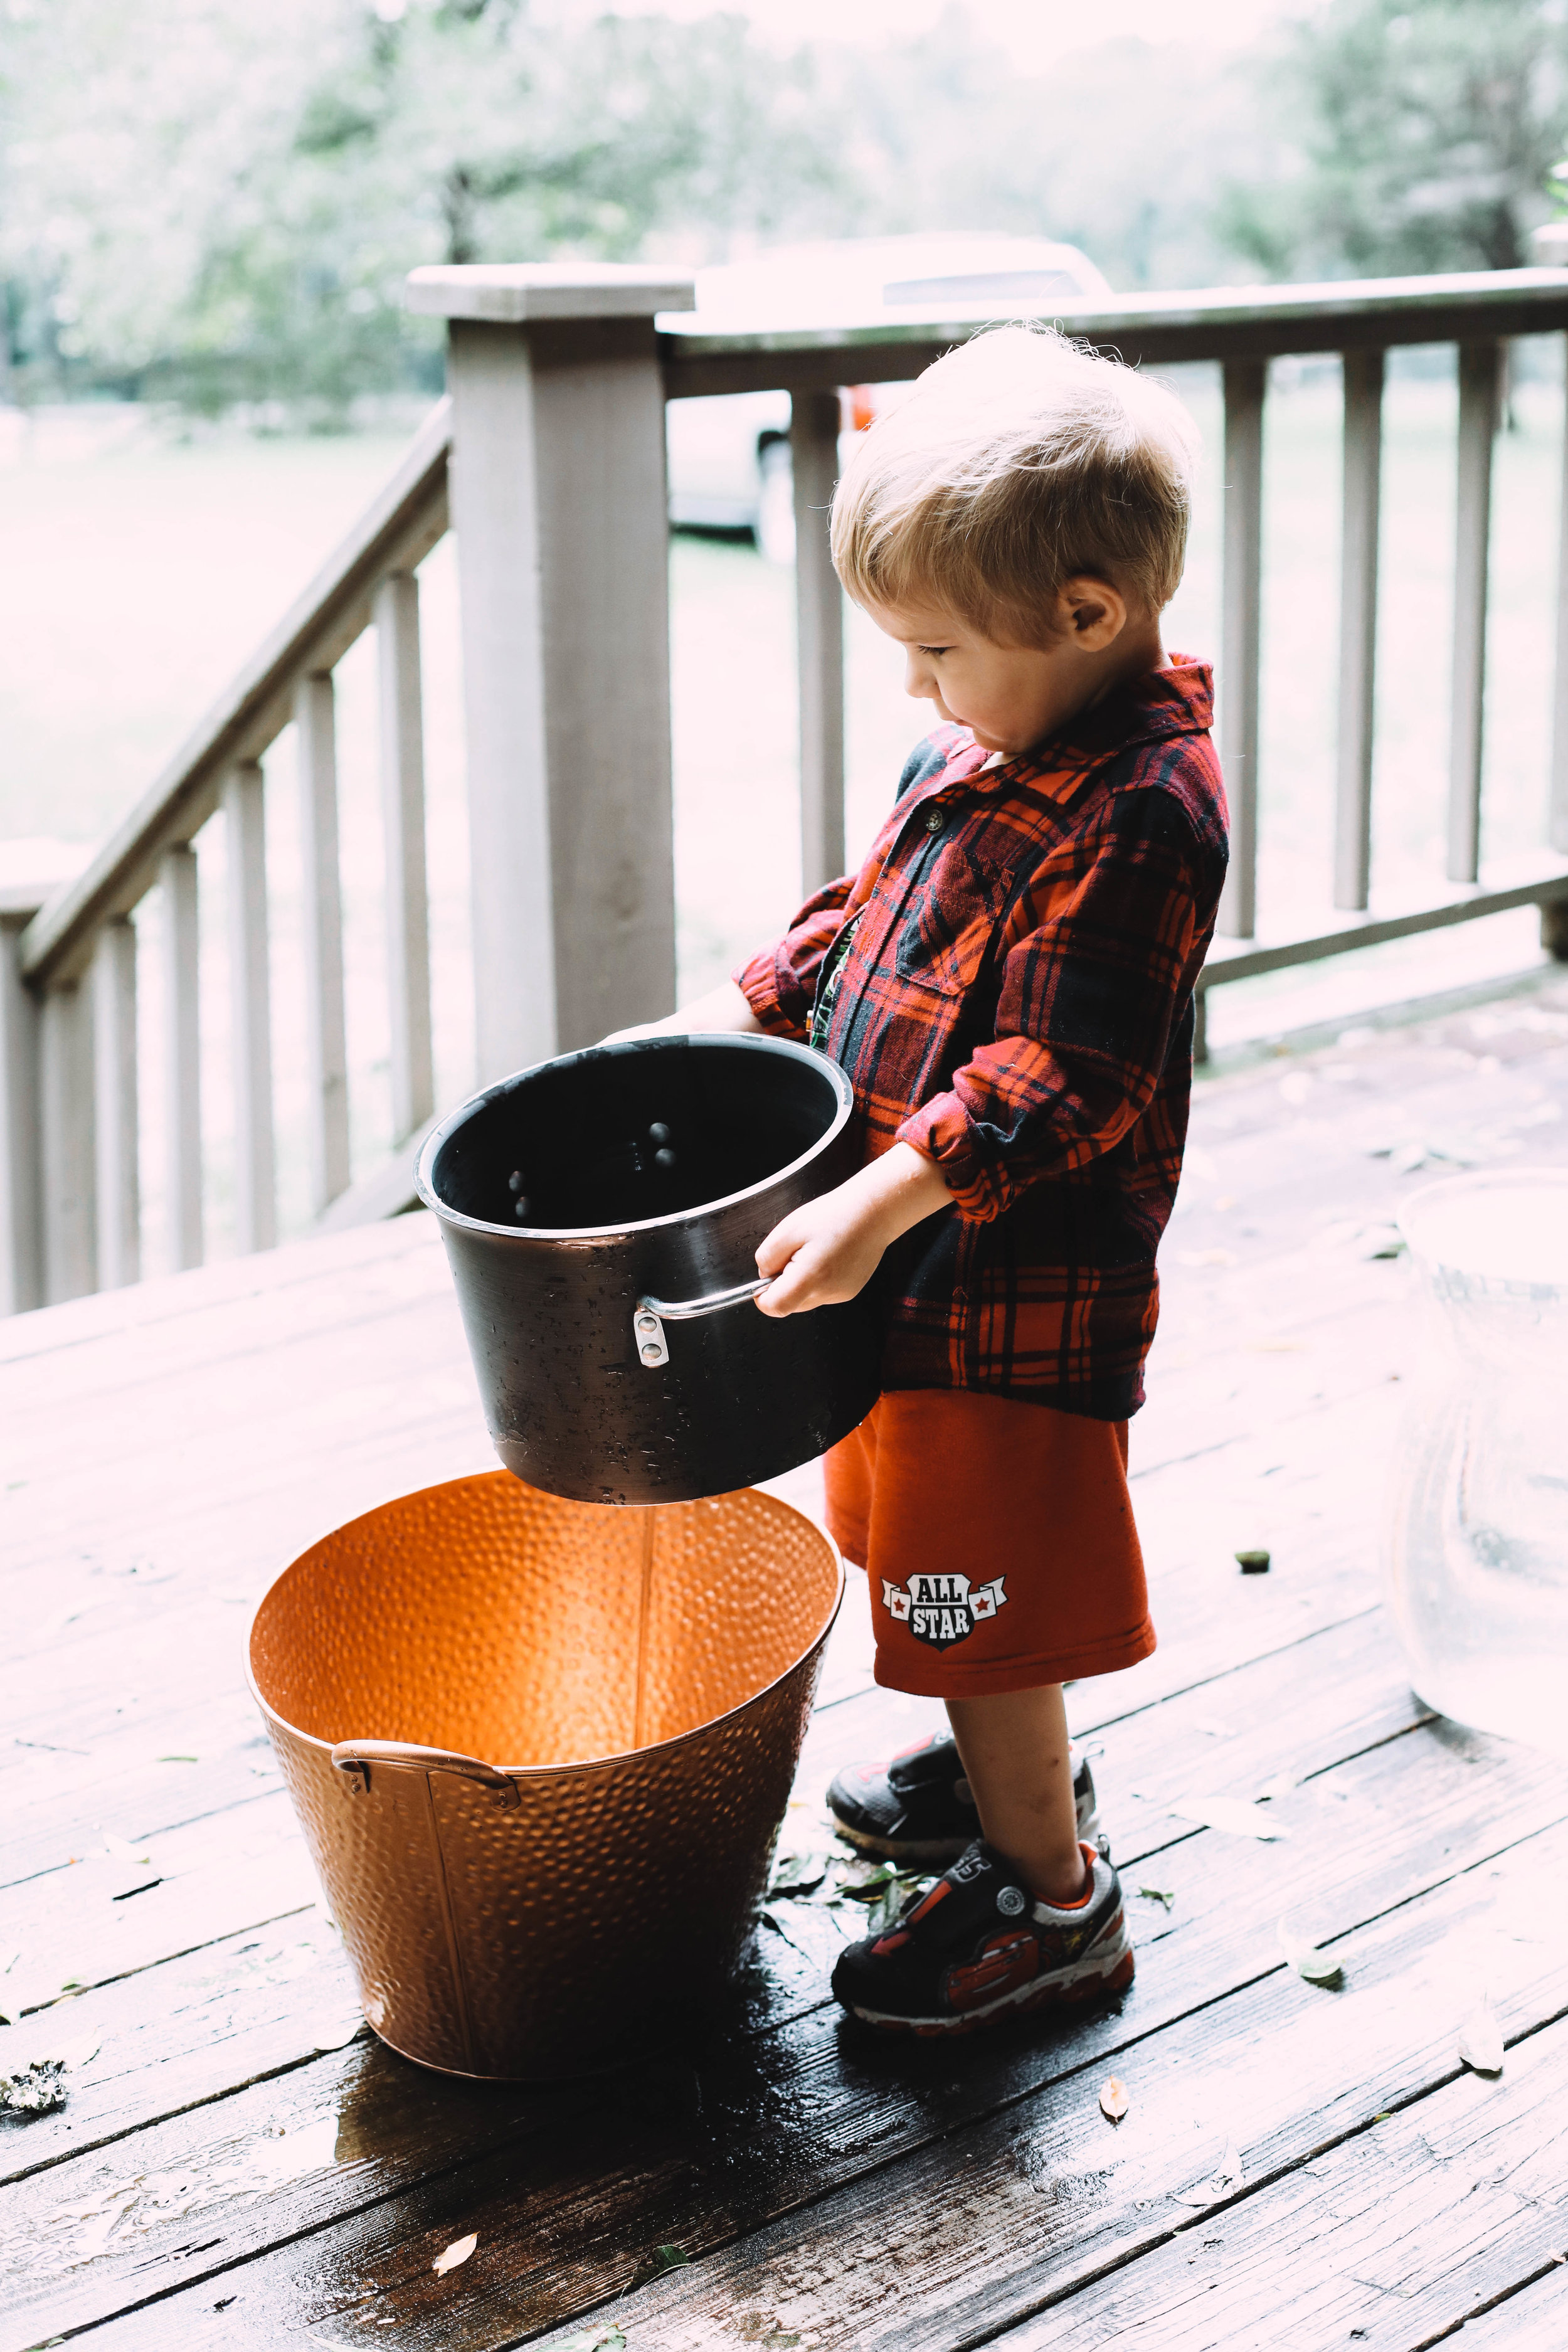 Emmerson definitely helped with the collection of the rain water!